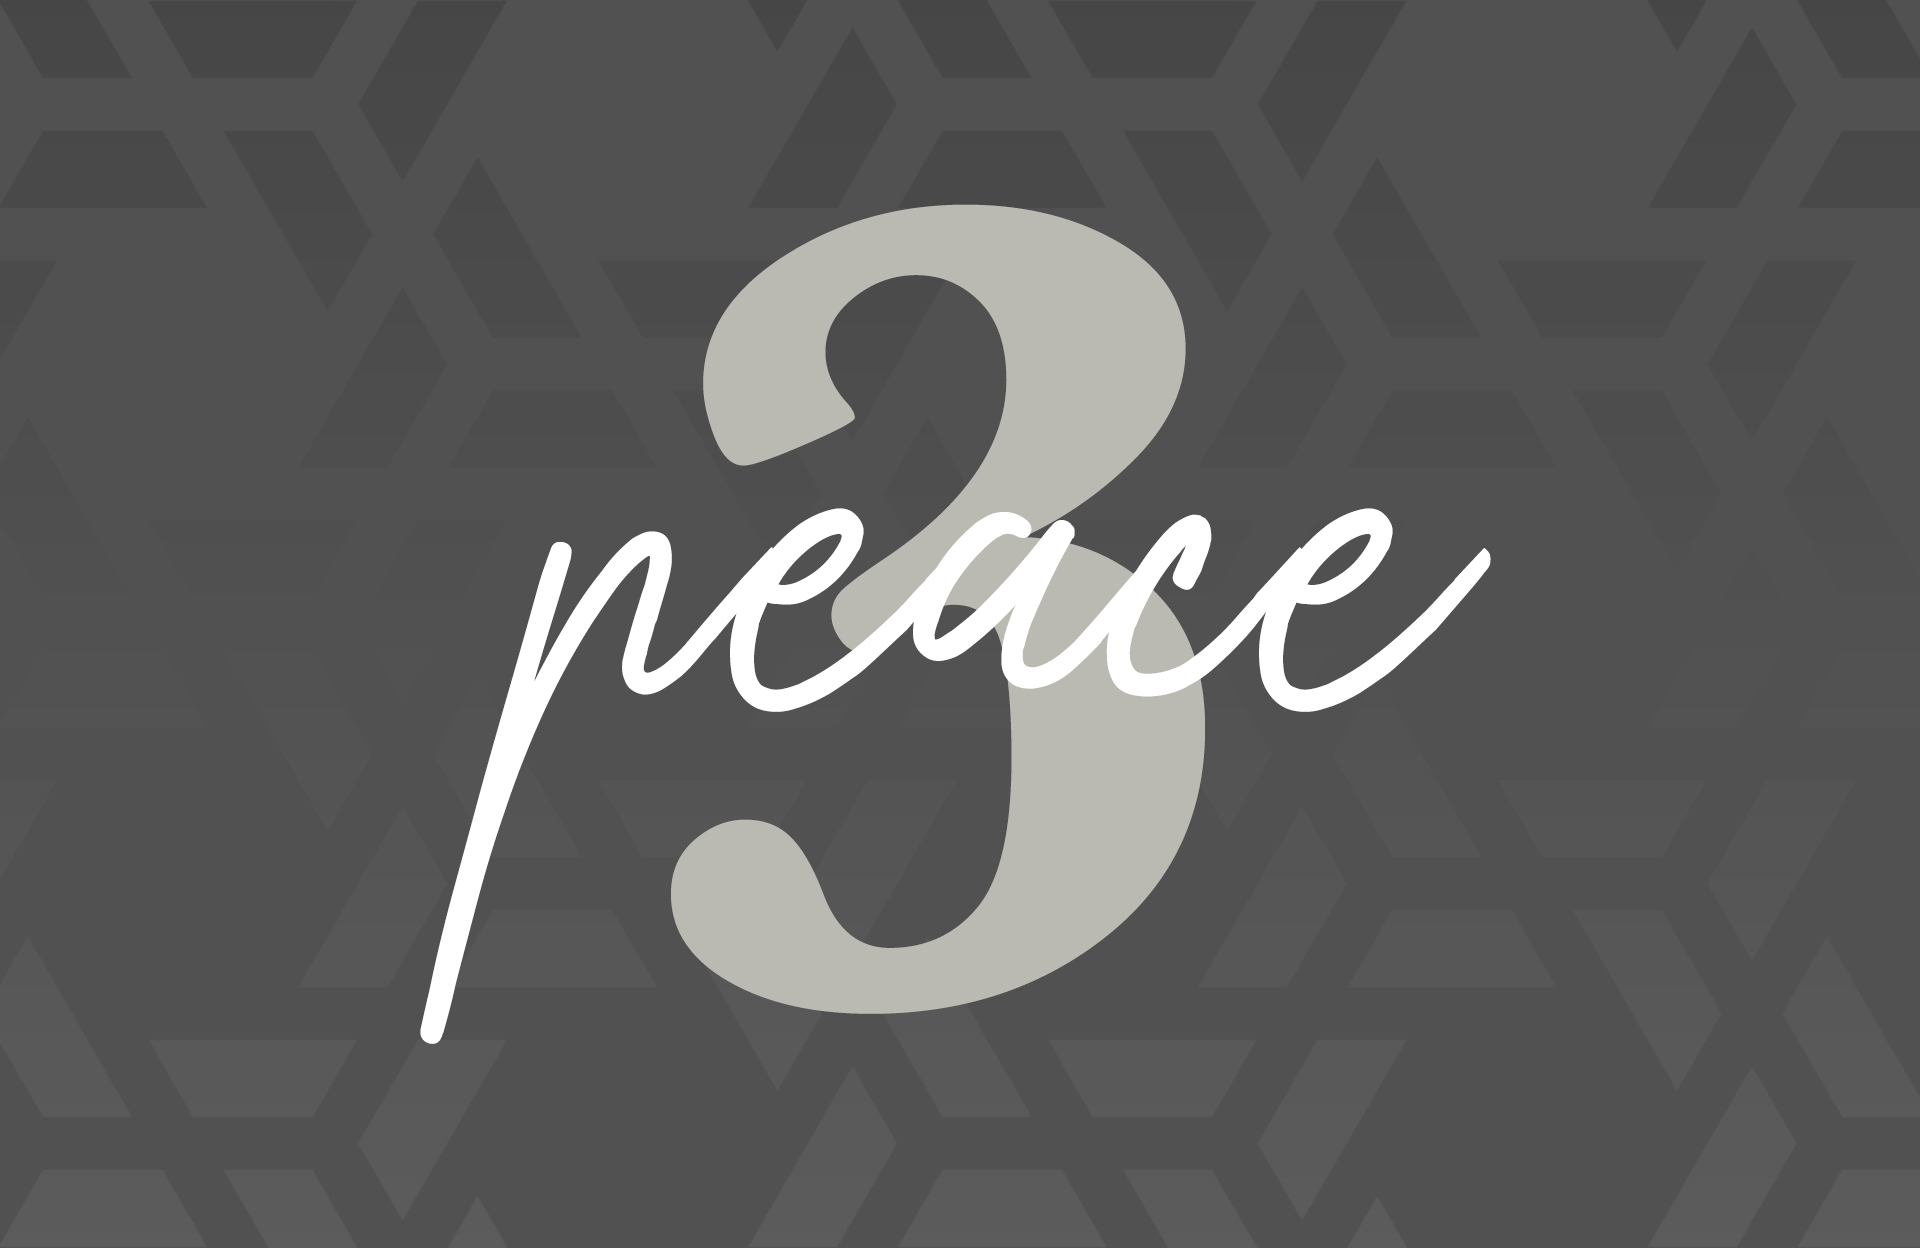 Day Three: Peace